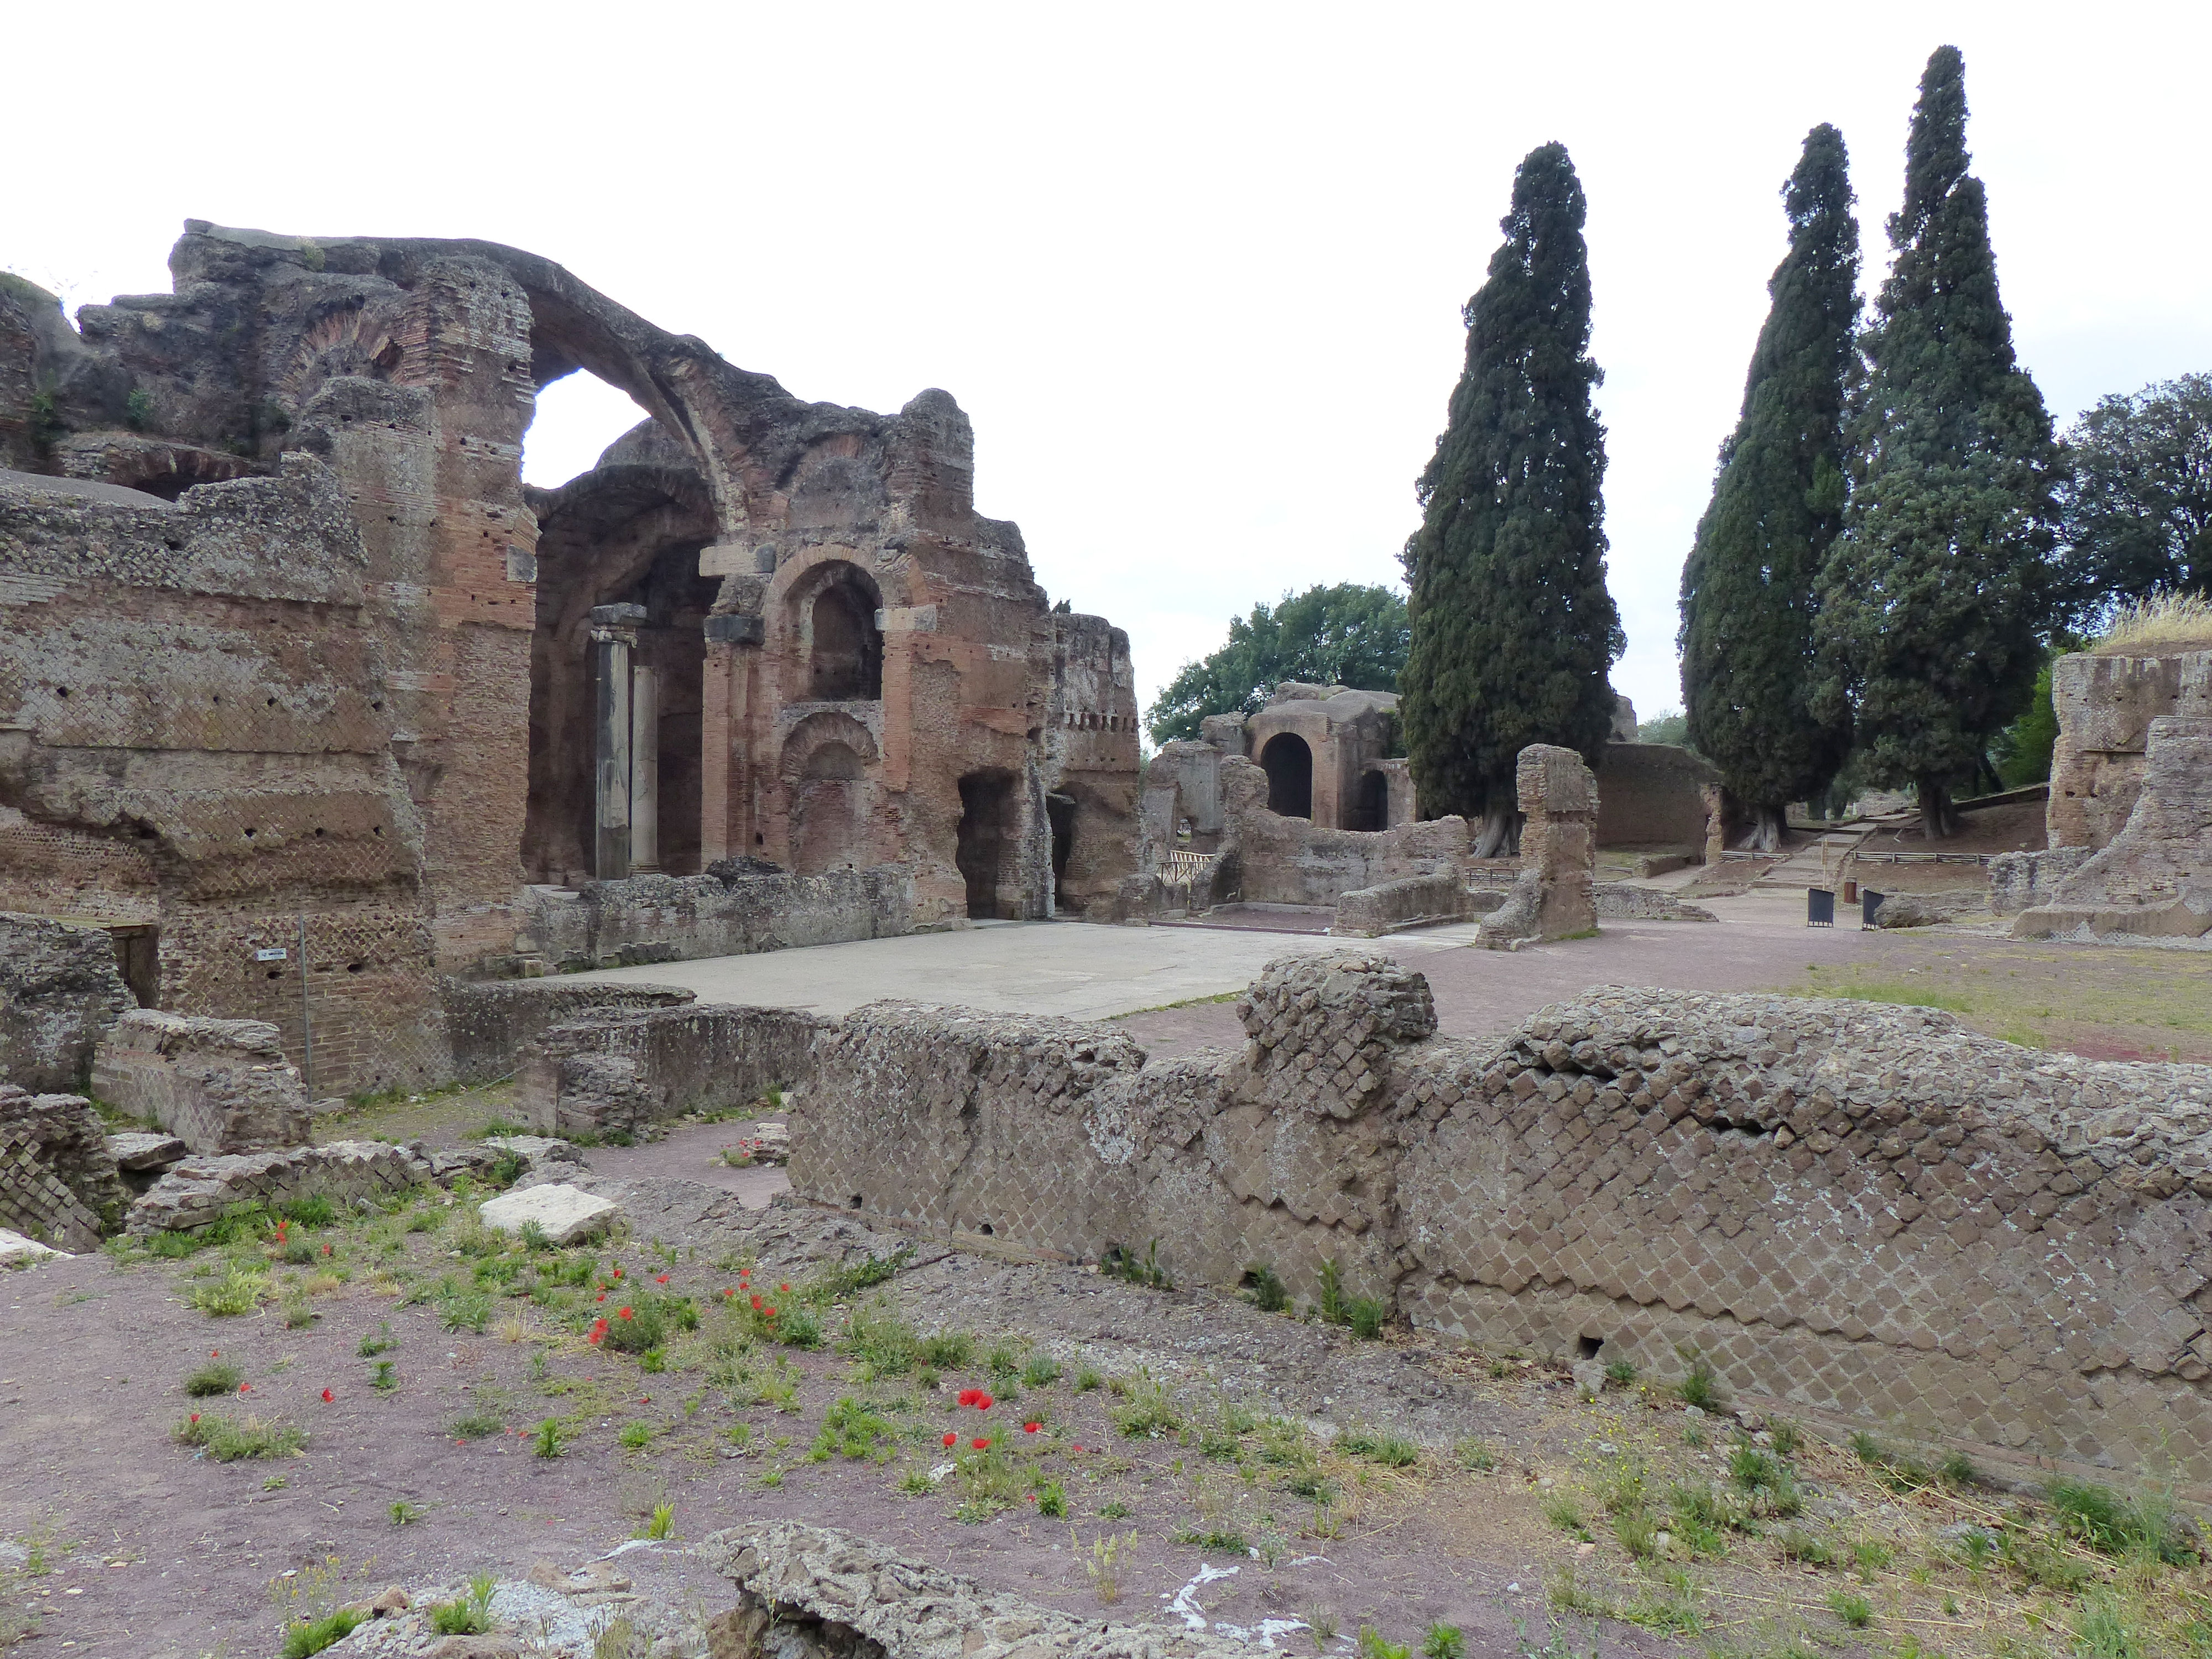 © Dipartimento di Scienze della Vita, Università di Trieste<br>by Andrea Moro<br>Comune di Tivoli, Villa Adriana, area archeologica, Roma, Lazio, Italia, 06/06/2017<br>Distributed under CC-BY-SA 4.0 license.